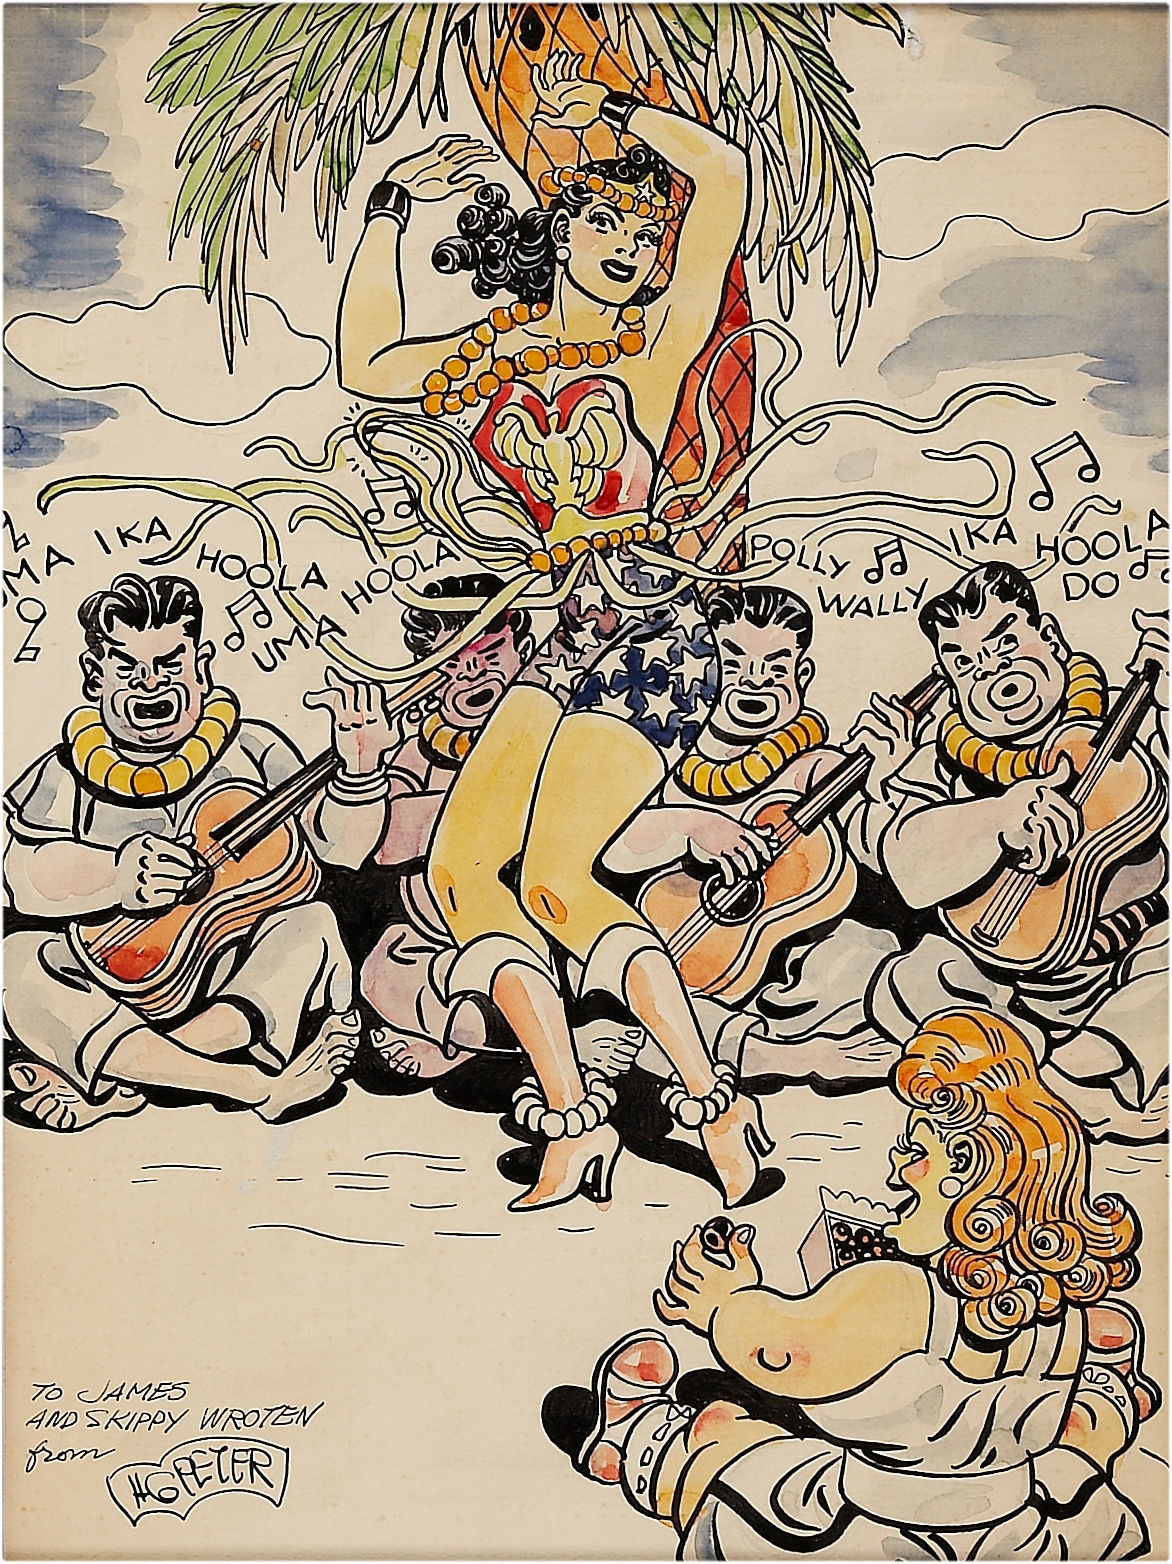 Wonder Woman Goes Hawaiian, Given by H.G Peter to James And Skippy Wroten